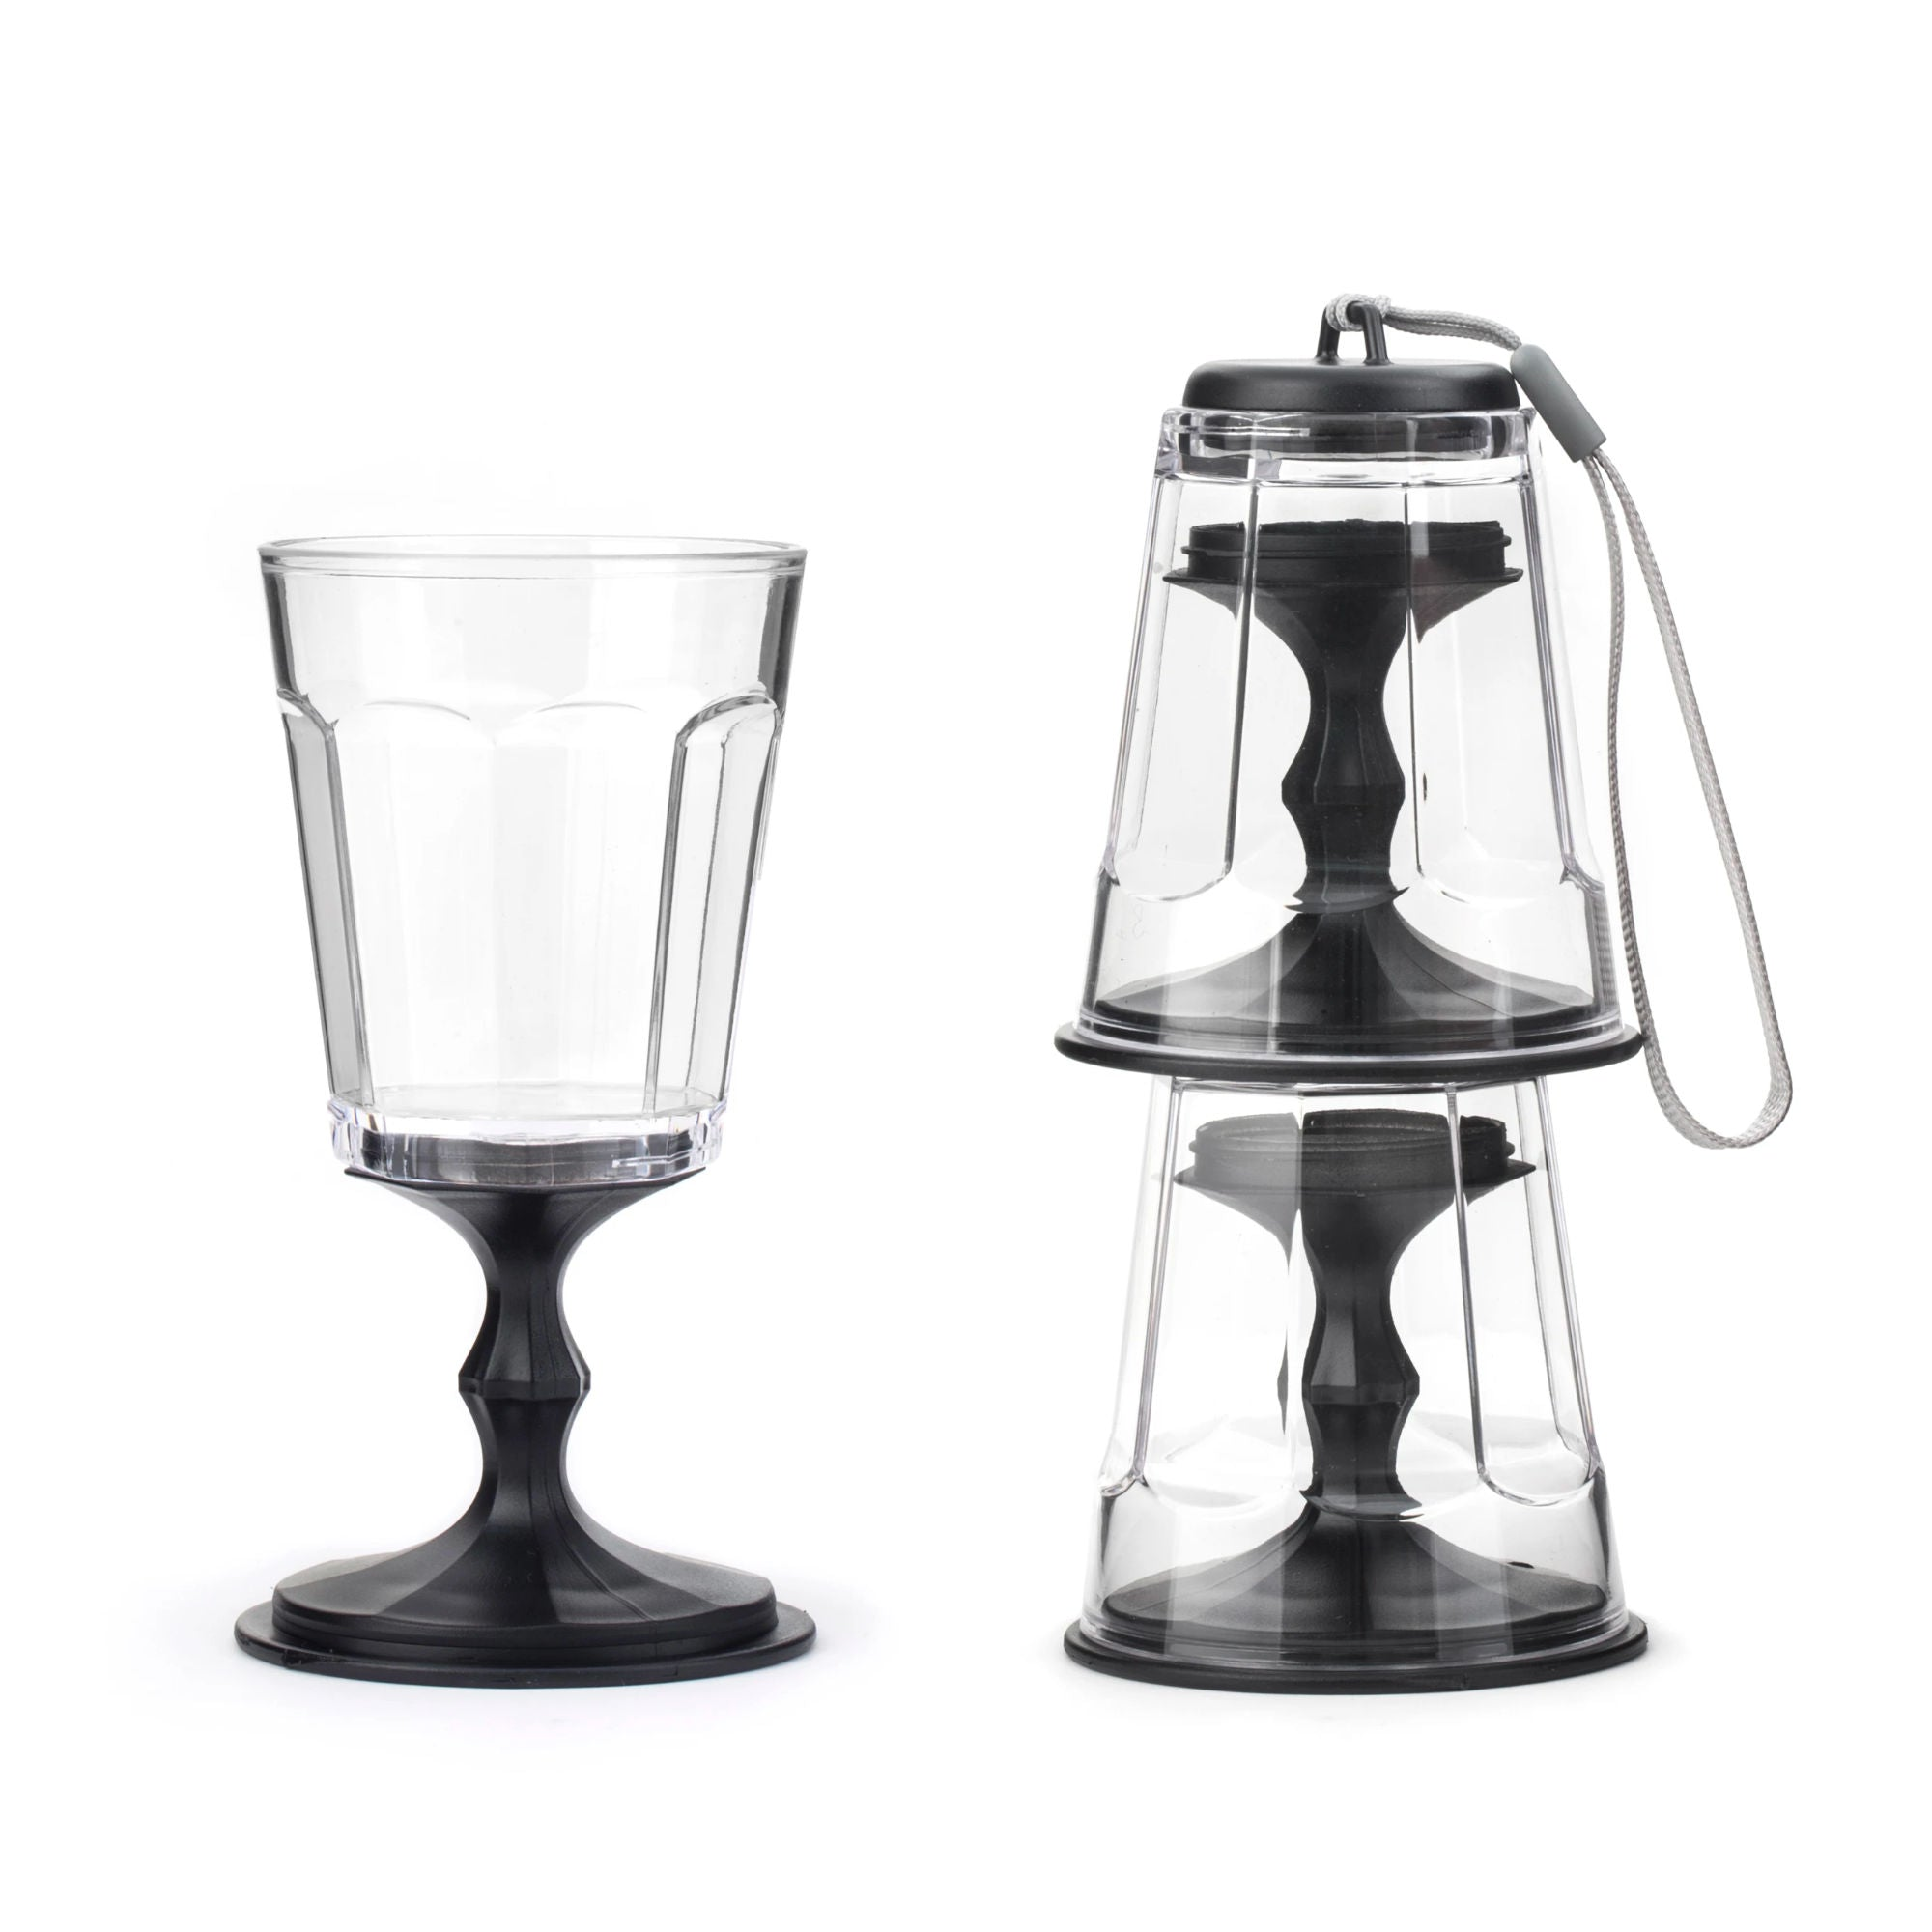 Kikkerland Stacking Wine Glass Set of 2